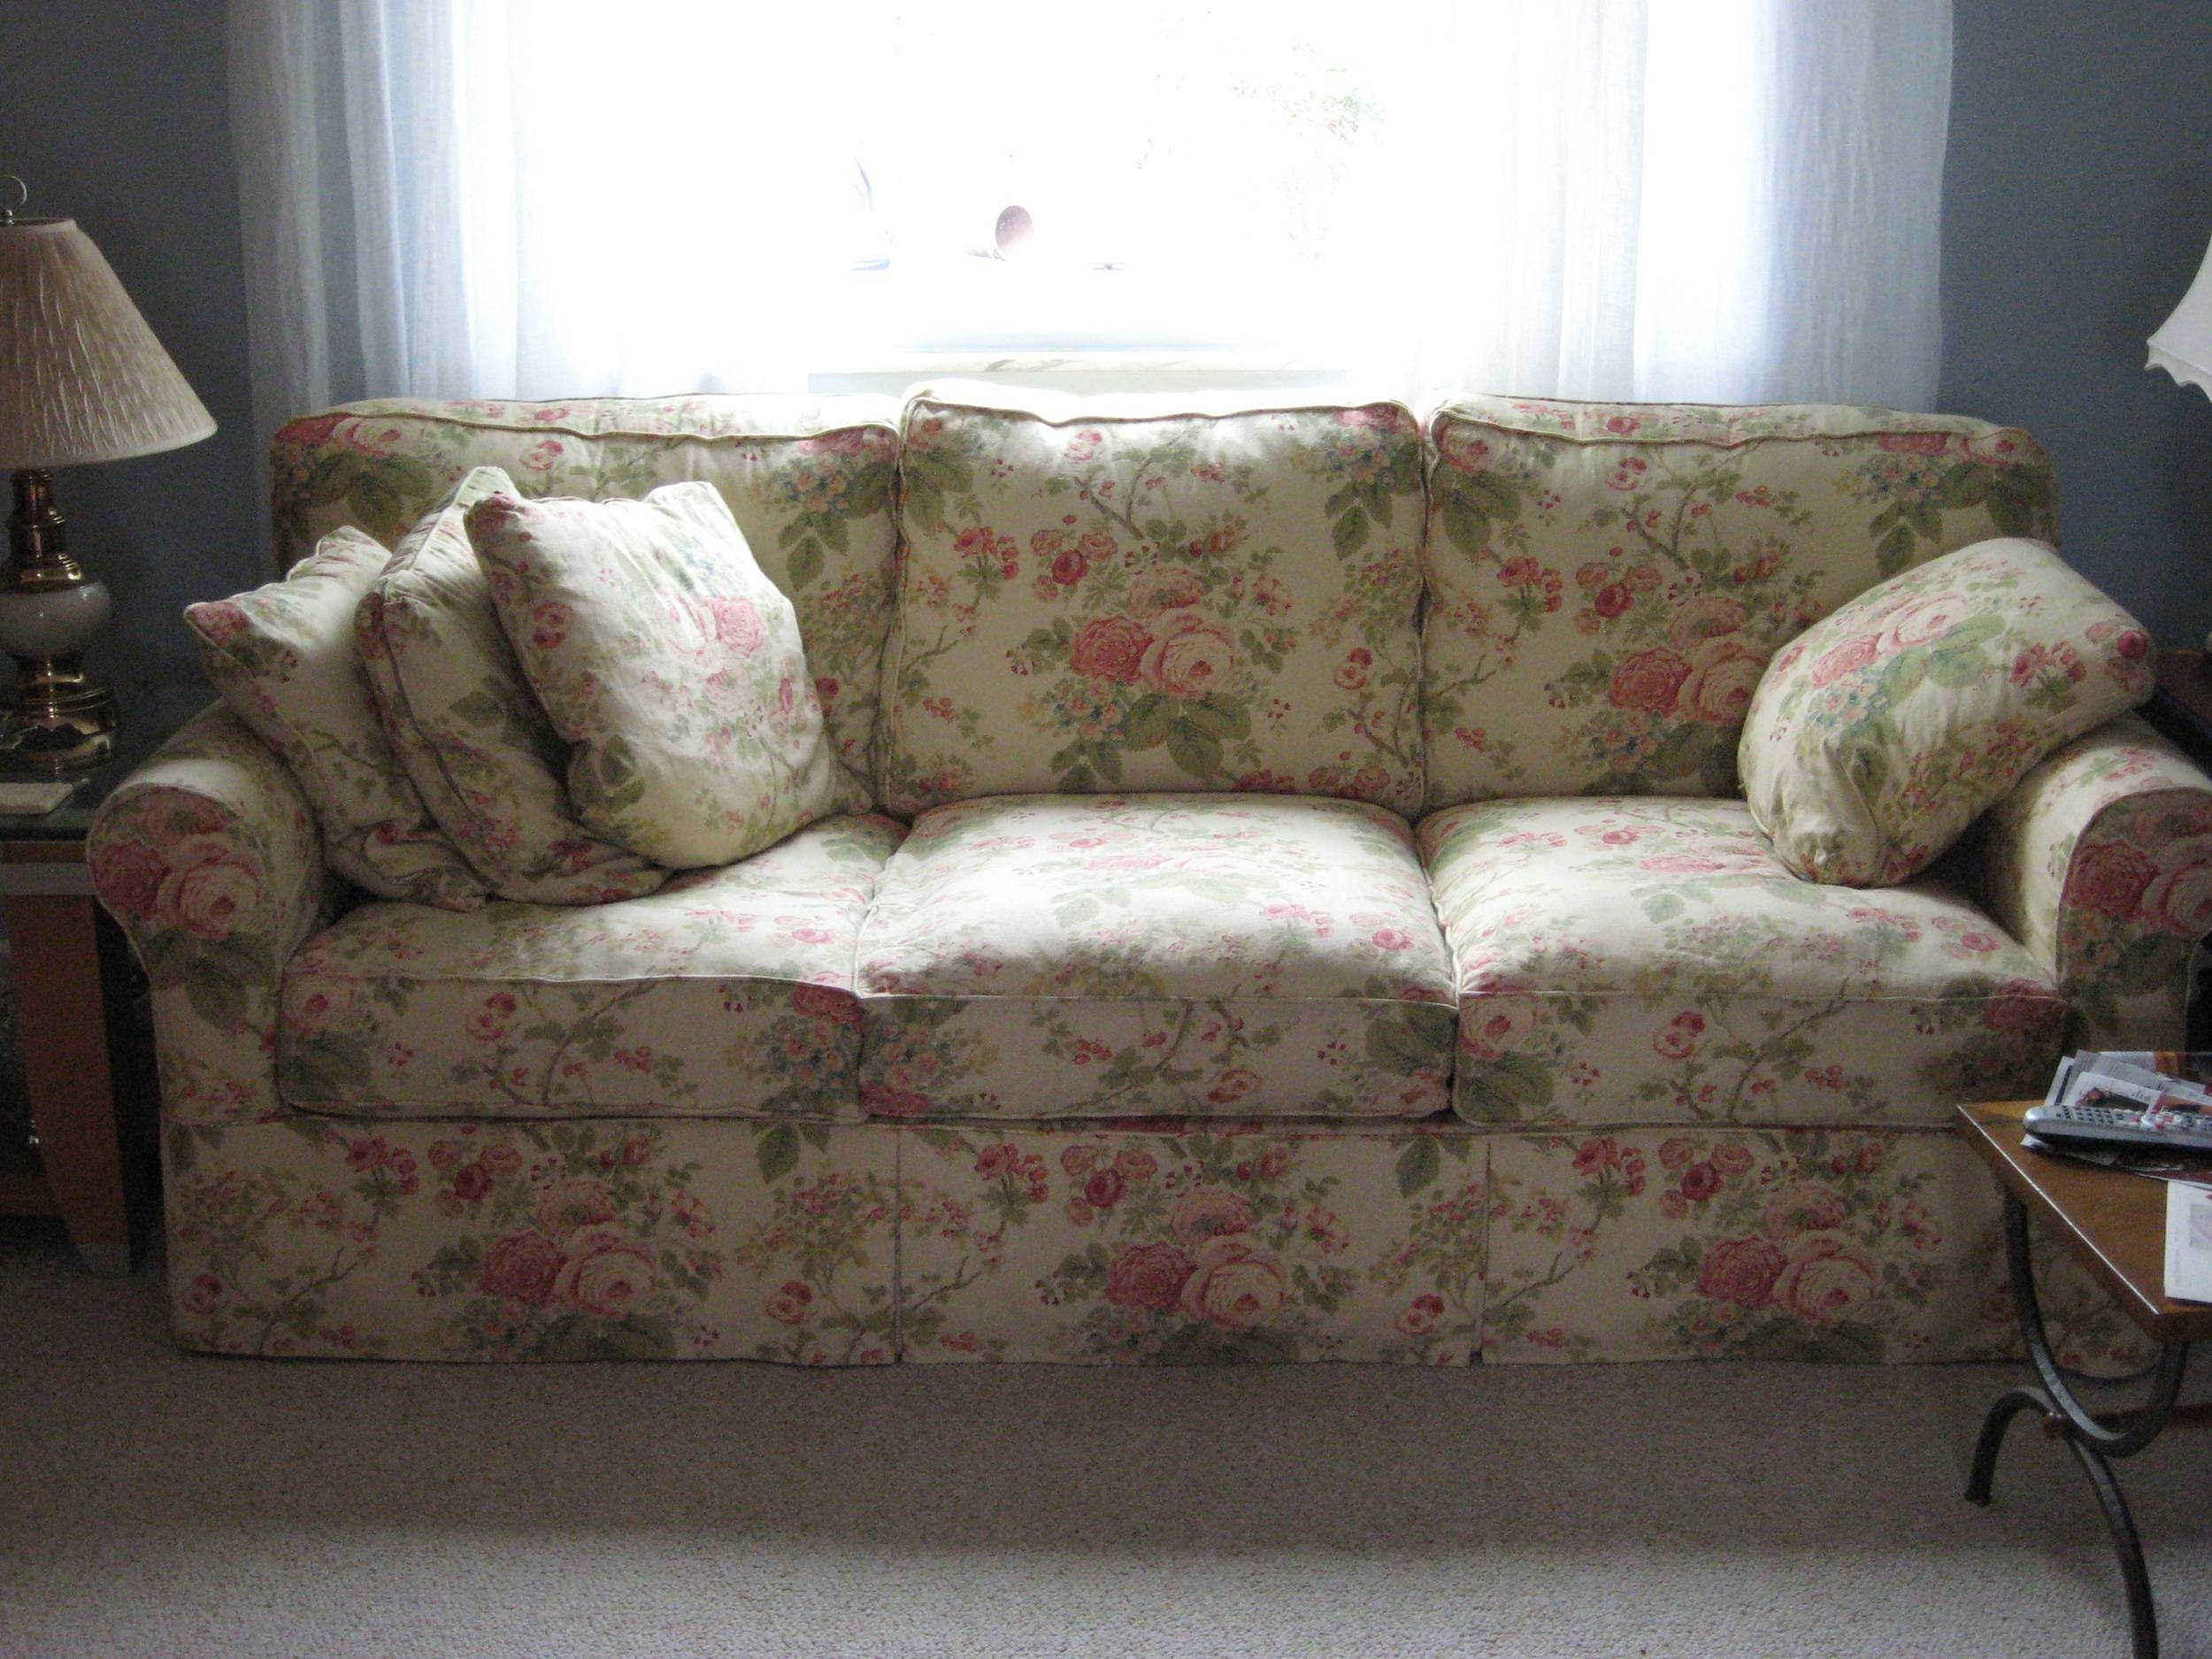 Wondrous Unique Couch Covers With Classic Floral Sofas Motif And For Floral Sofas (Photo 15 of 15)